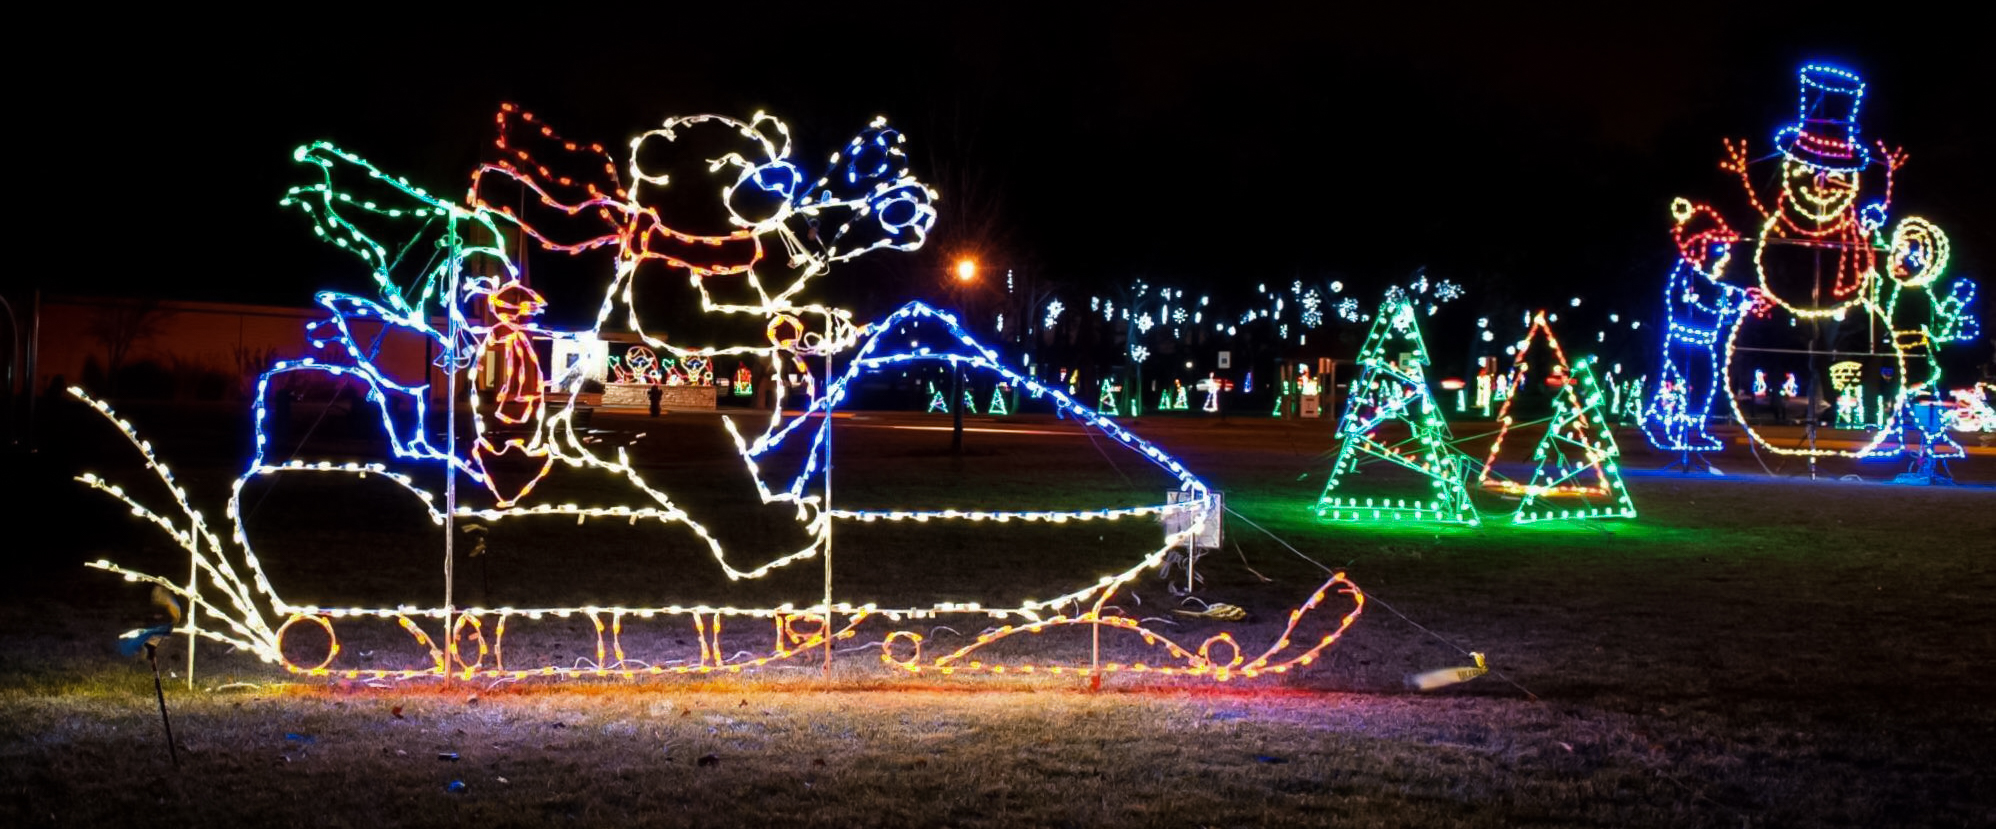 Festival of Lights @ Phillips Park